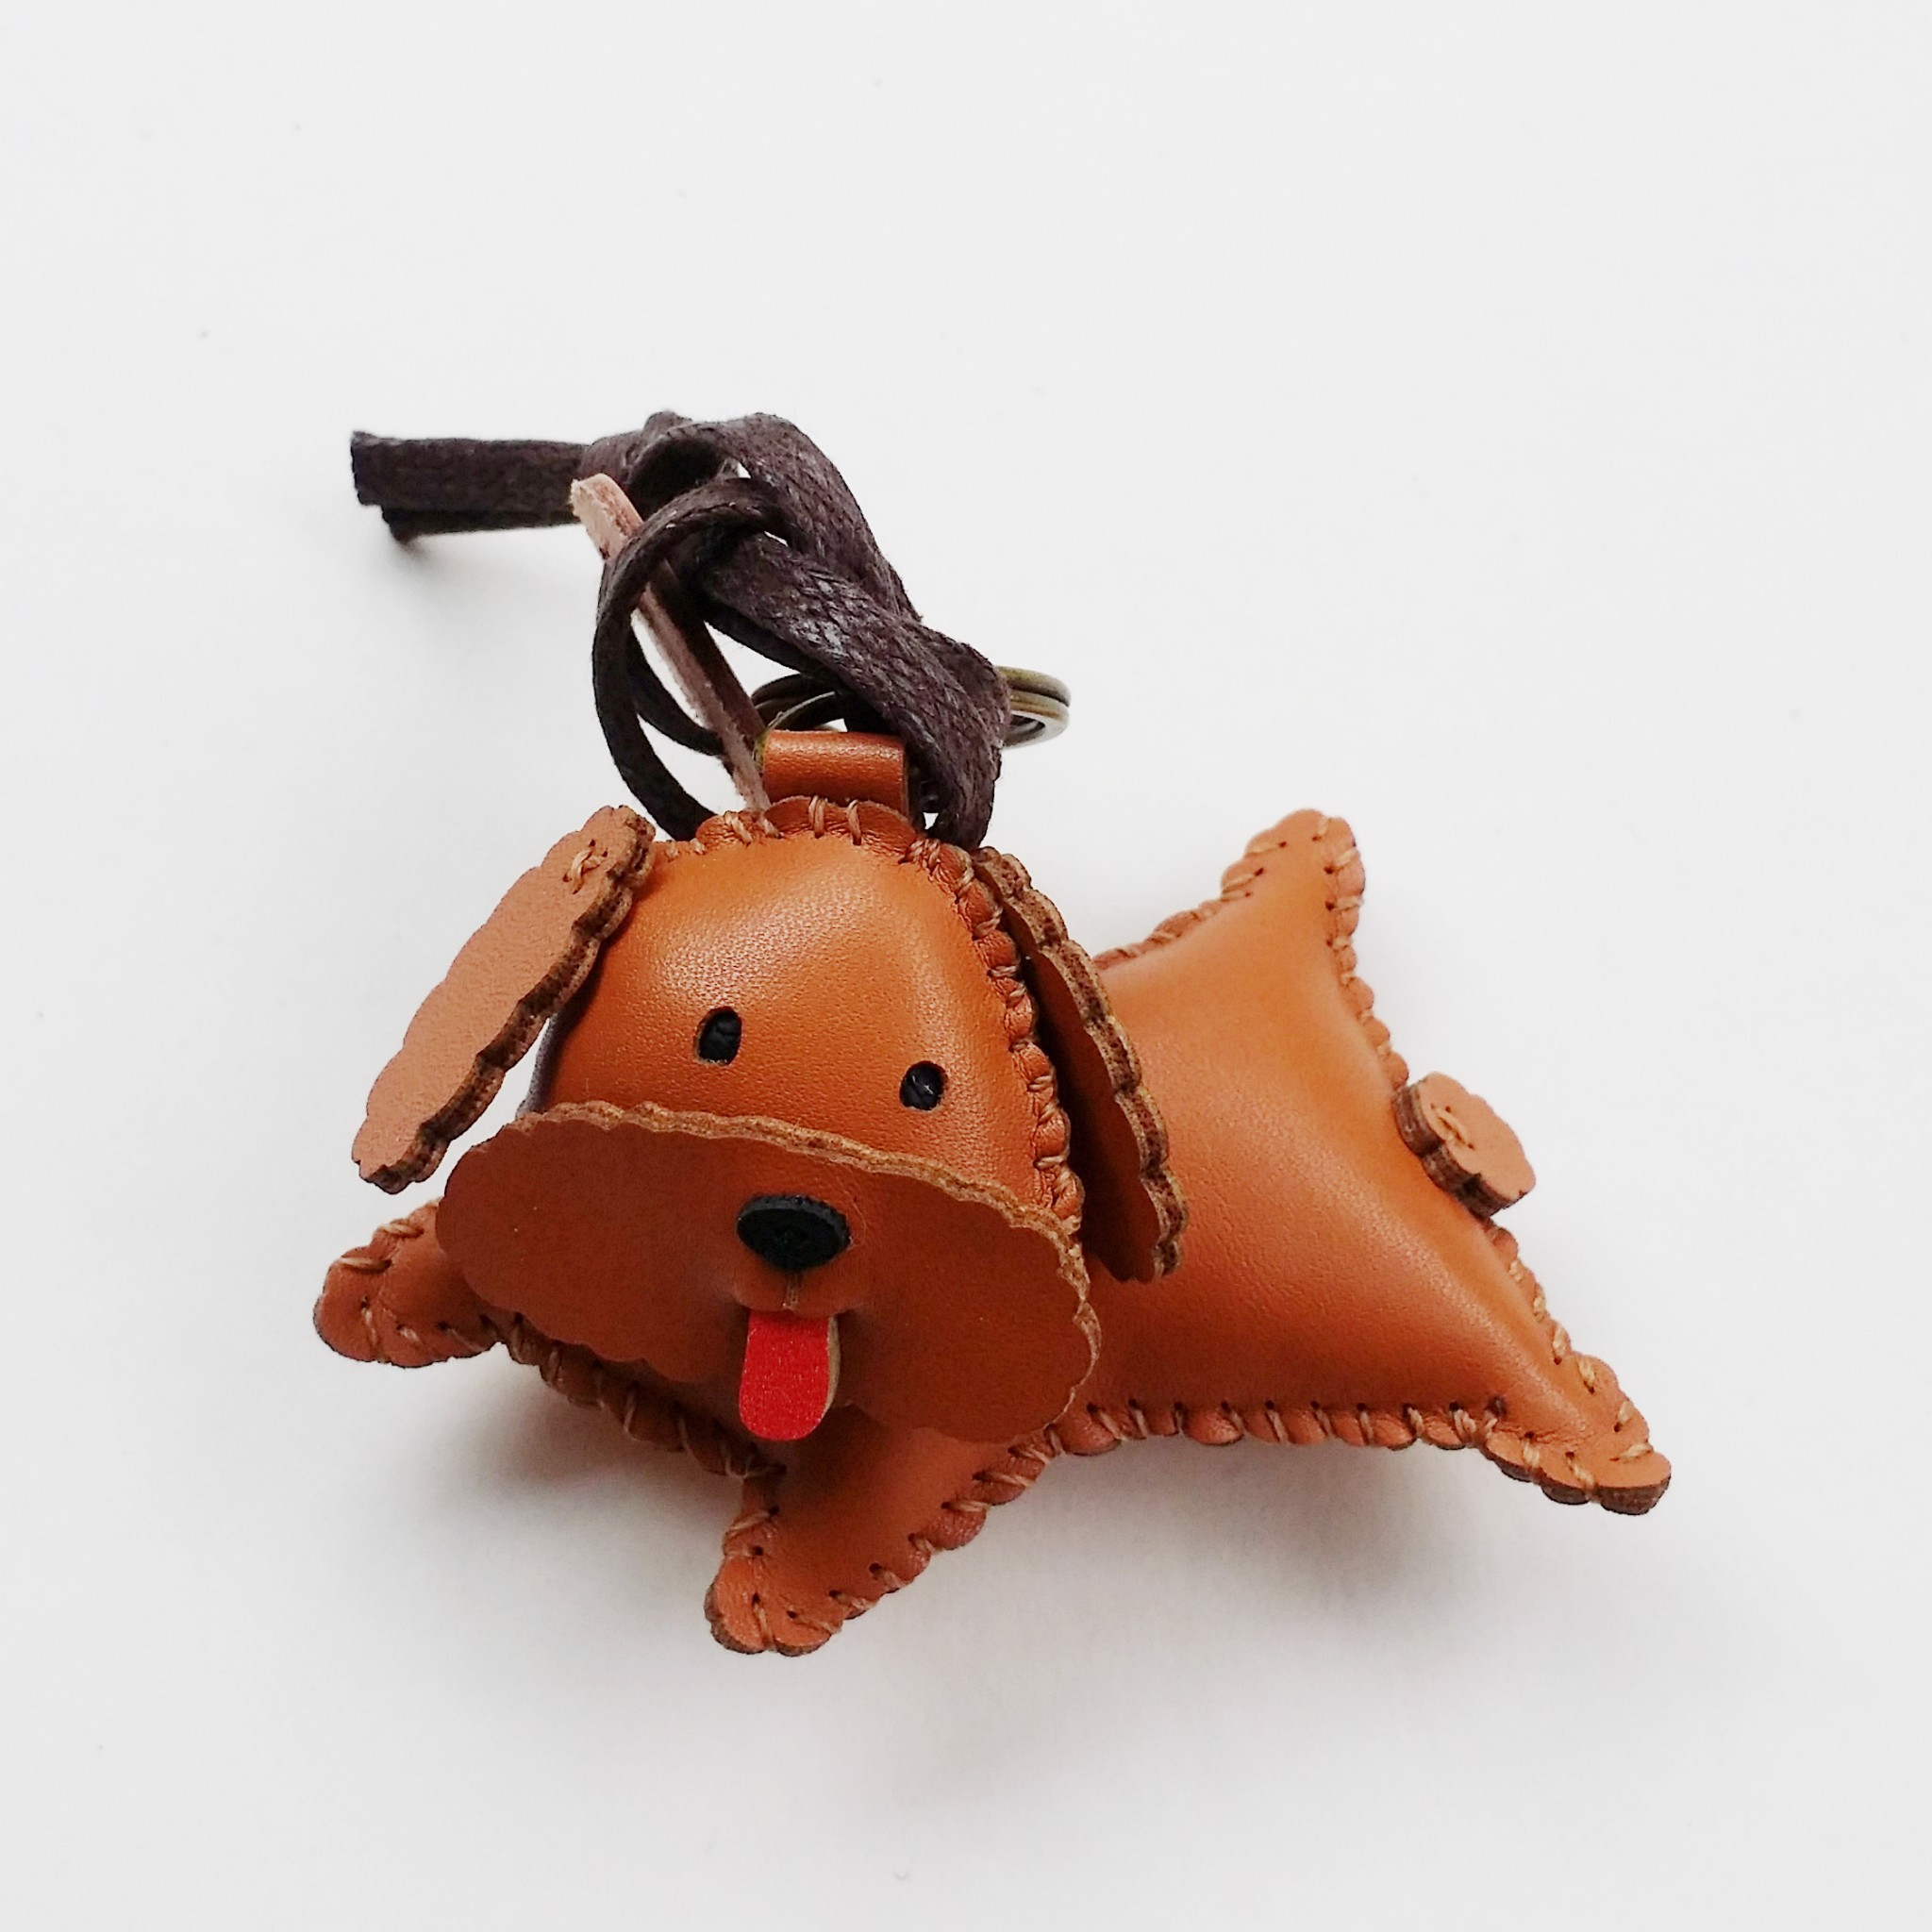 Charm Da Chó Poodle Độc Đáo - Unique Leather Charm Poodle Edition